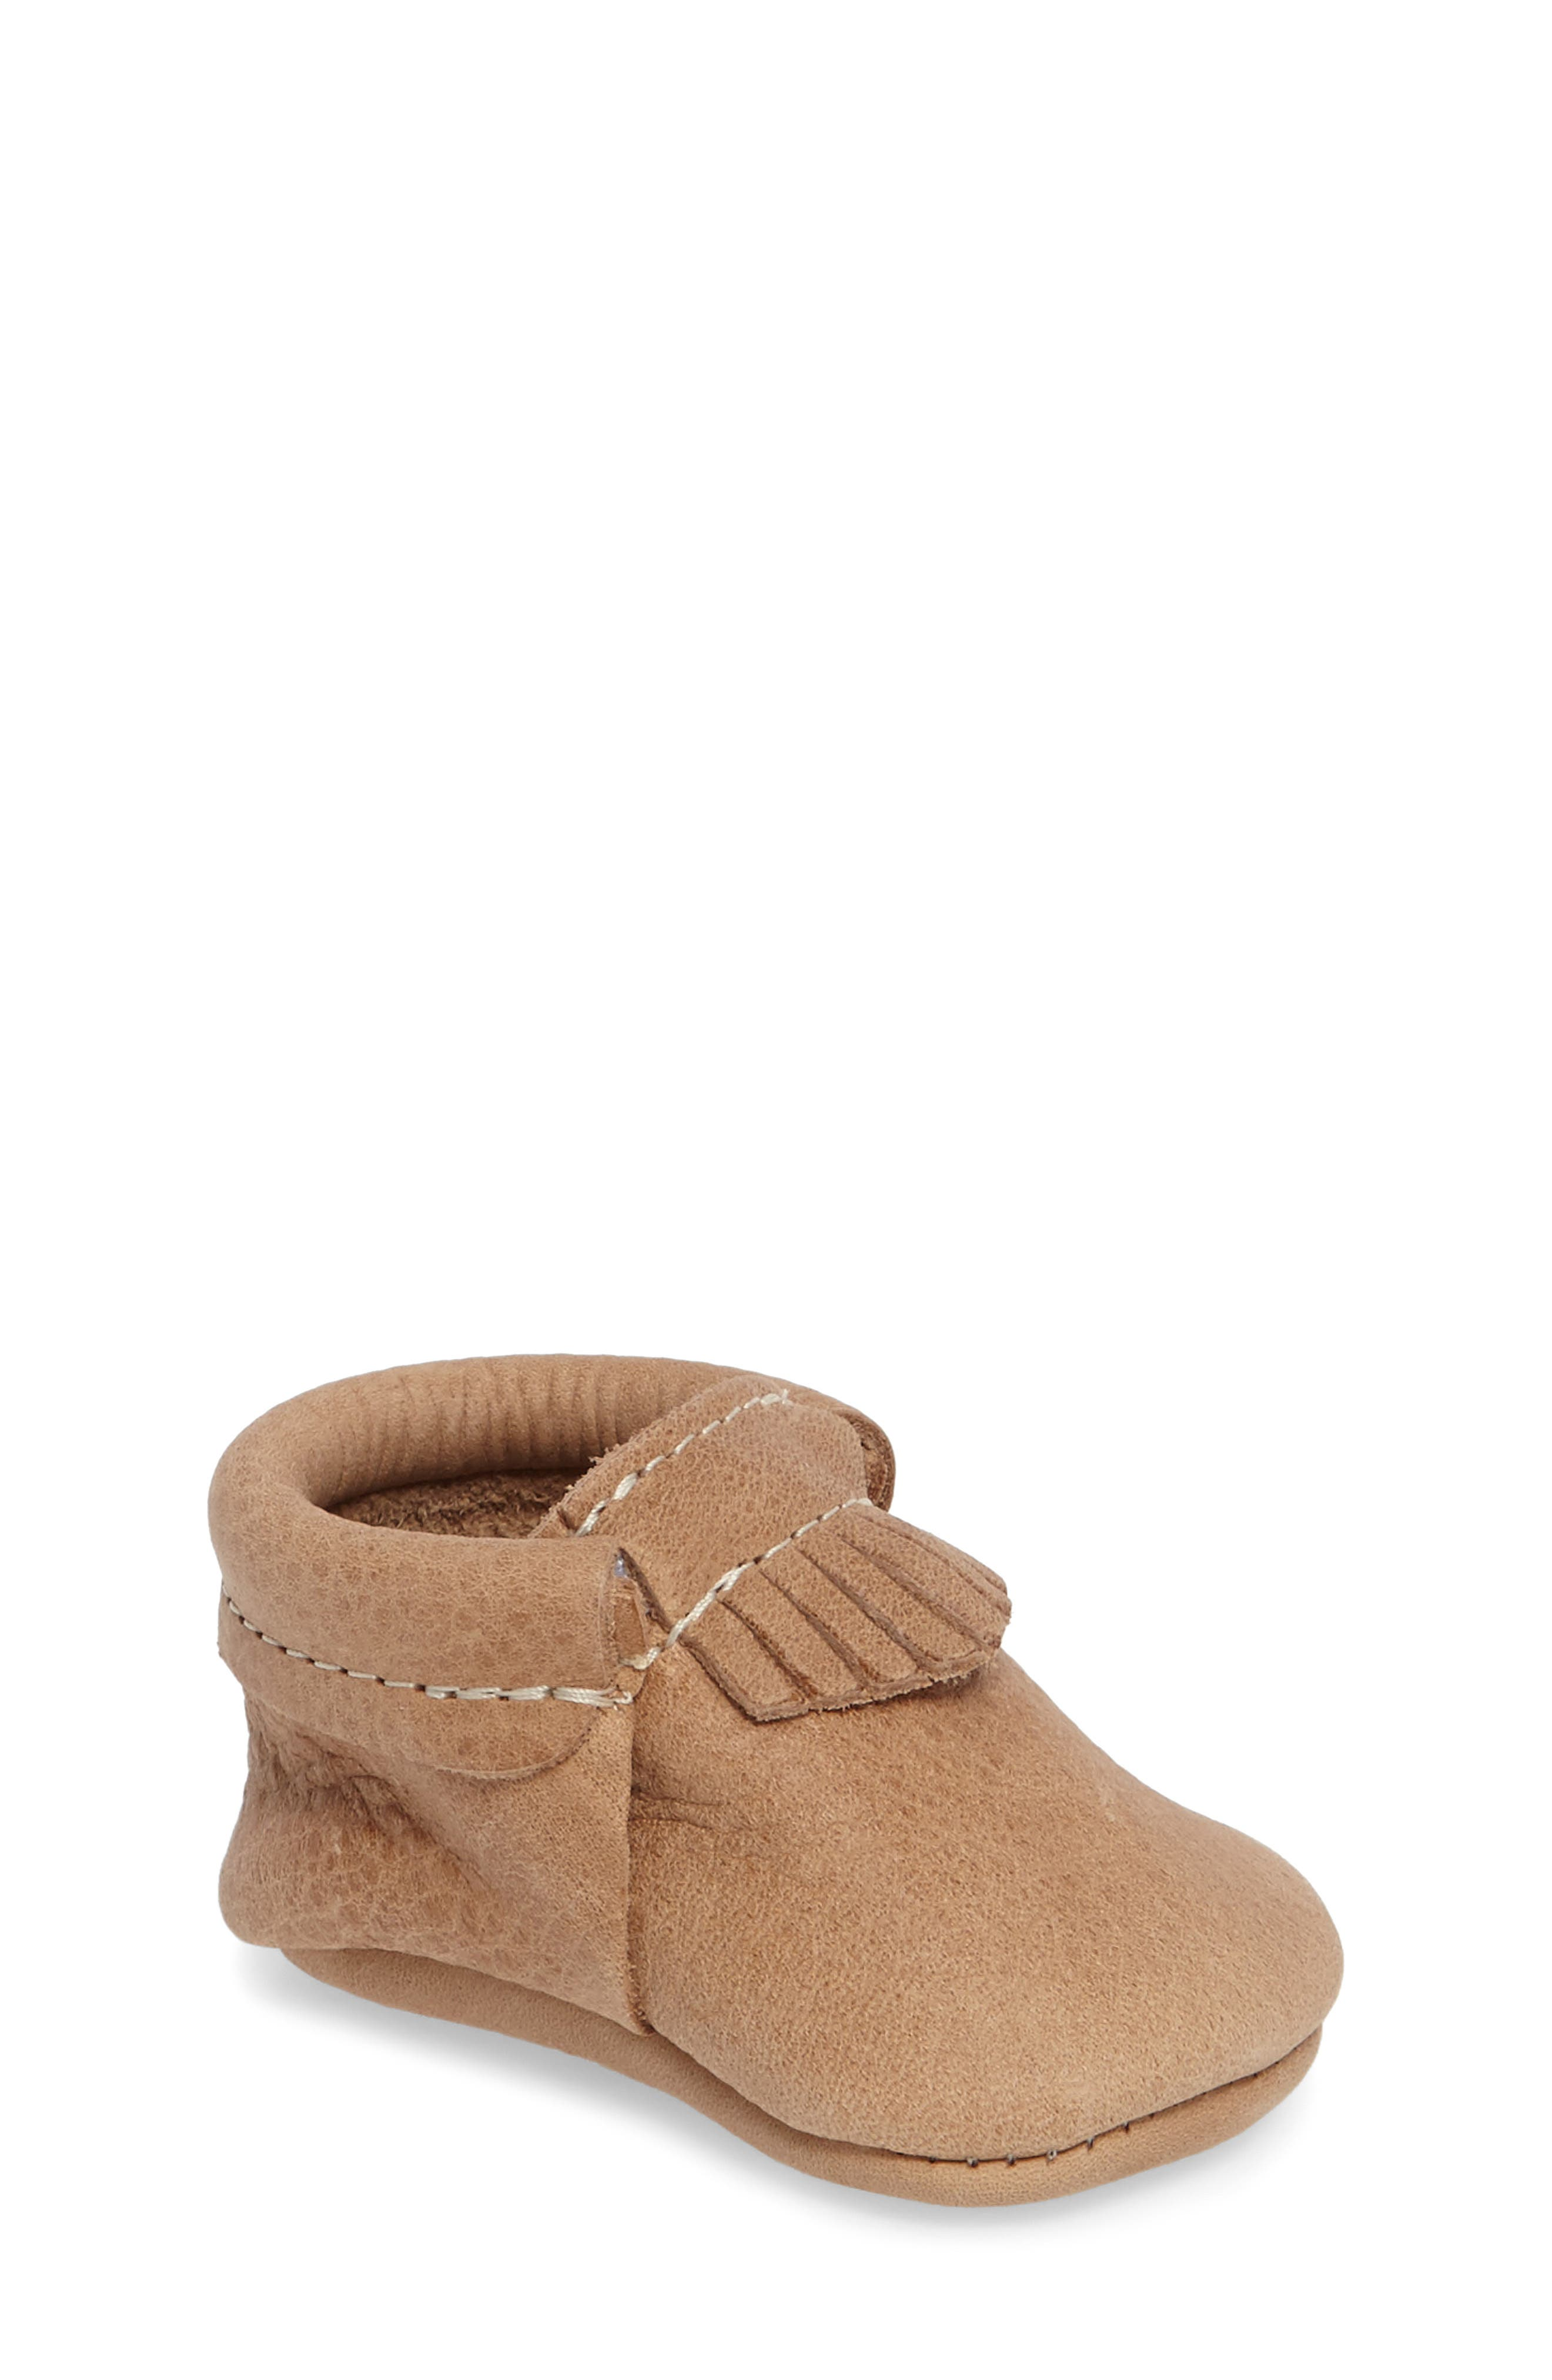 City Moccasin,                             Main thumbnail 1, color,                             Weathered Brown